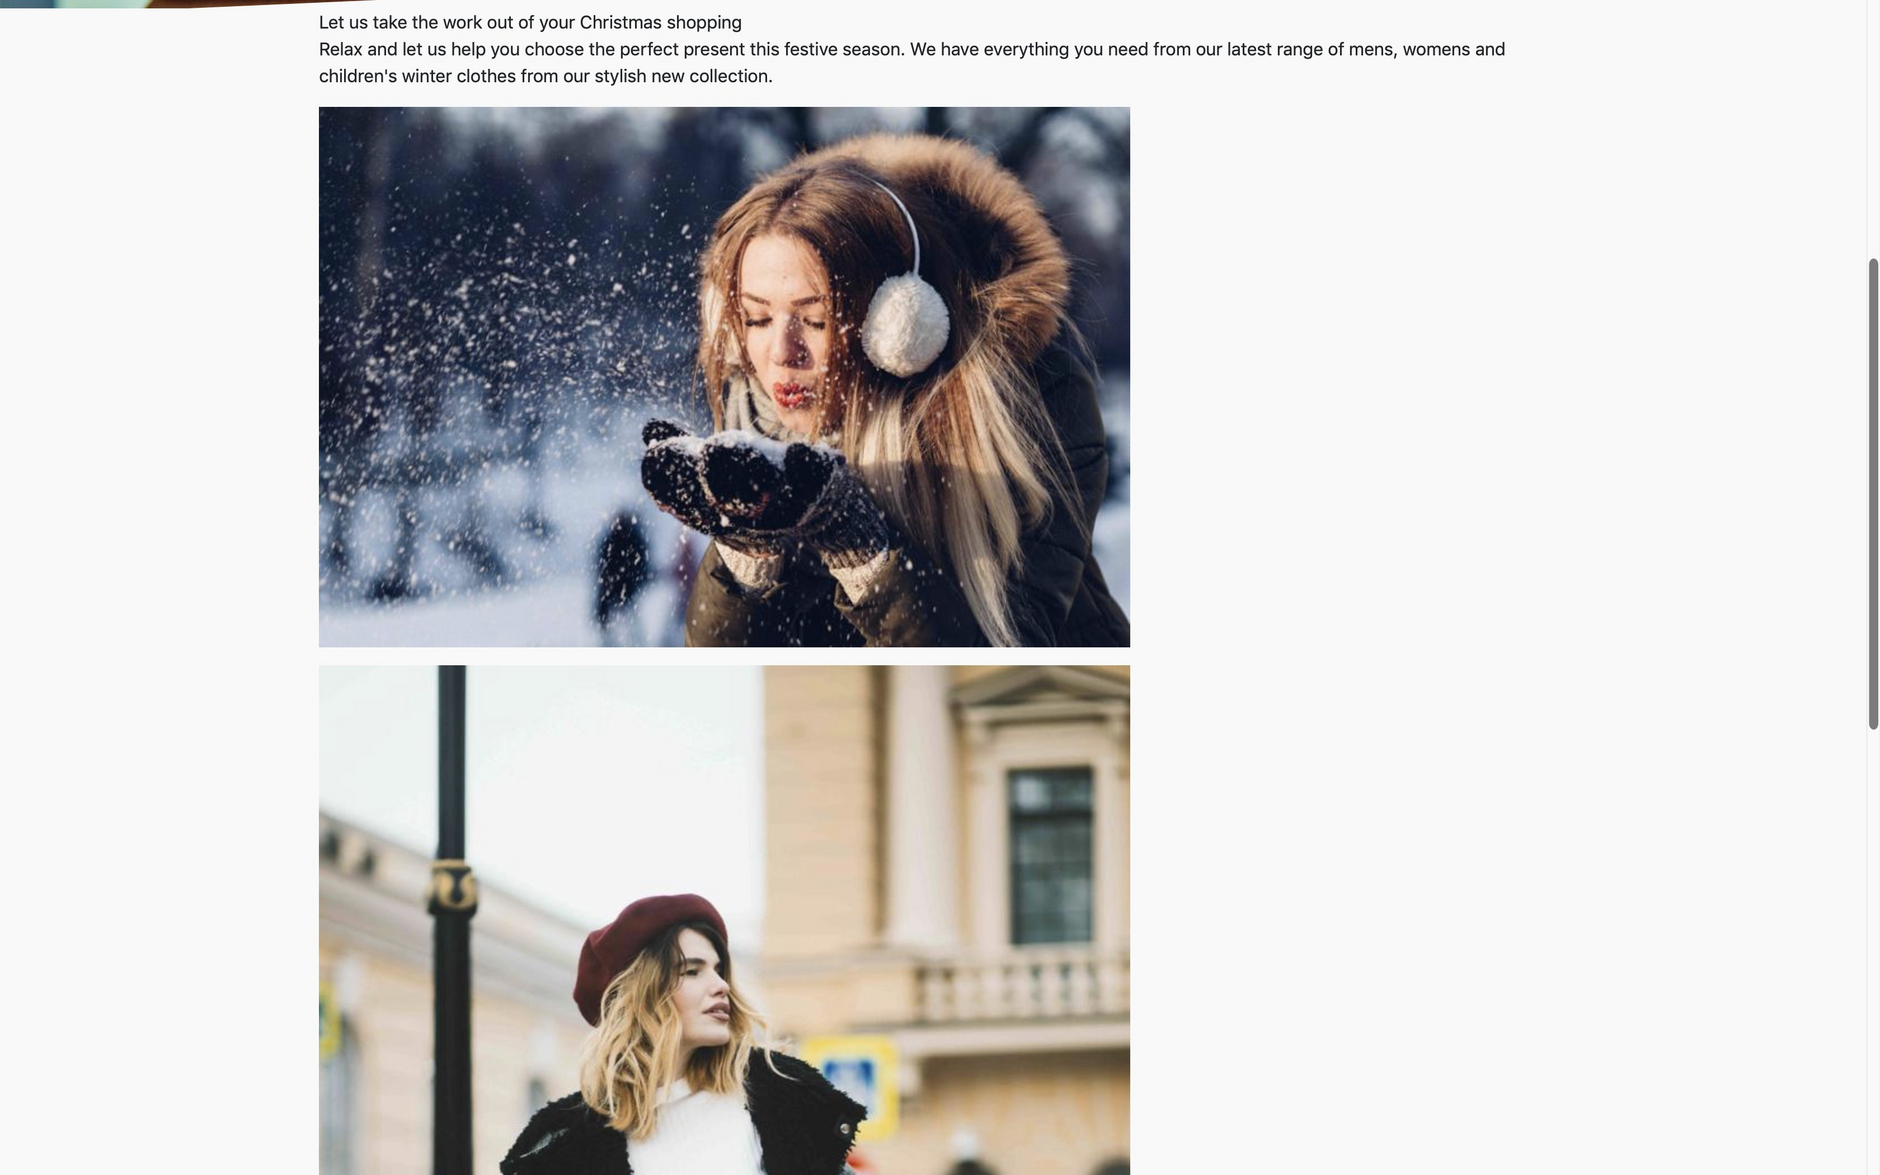 Previewing the blog asset on a stand alone page